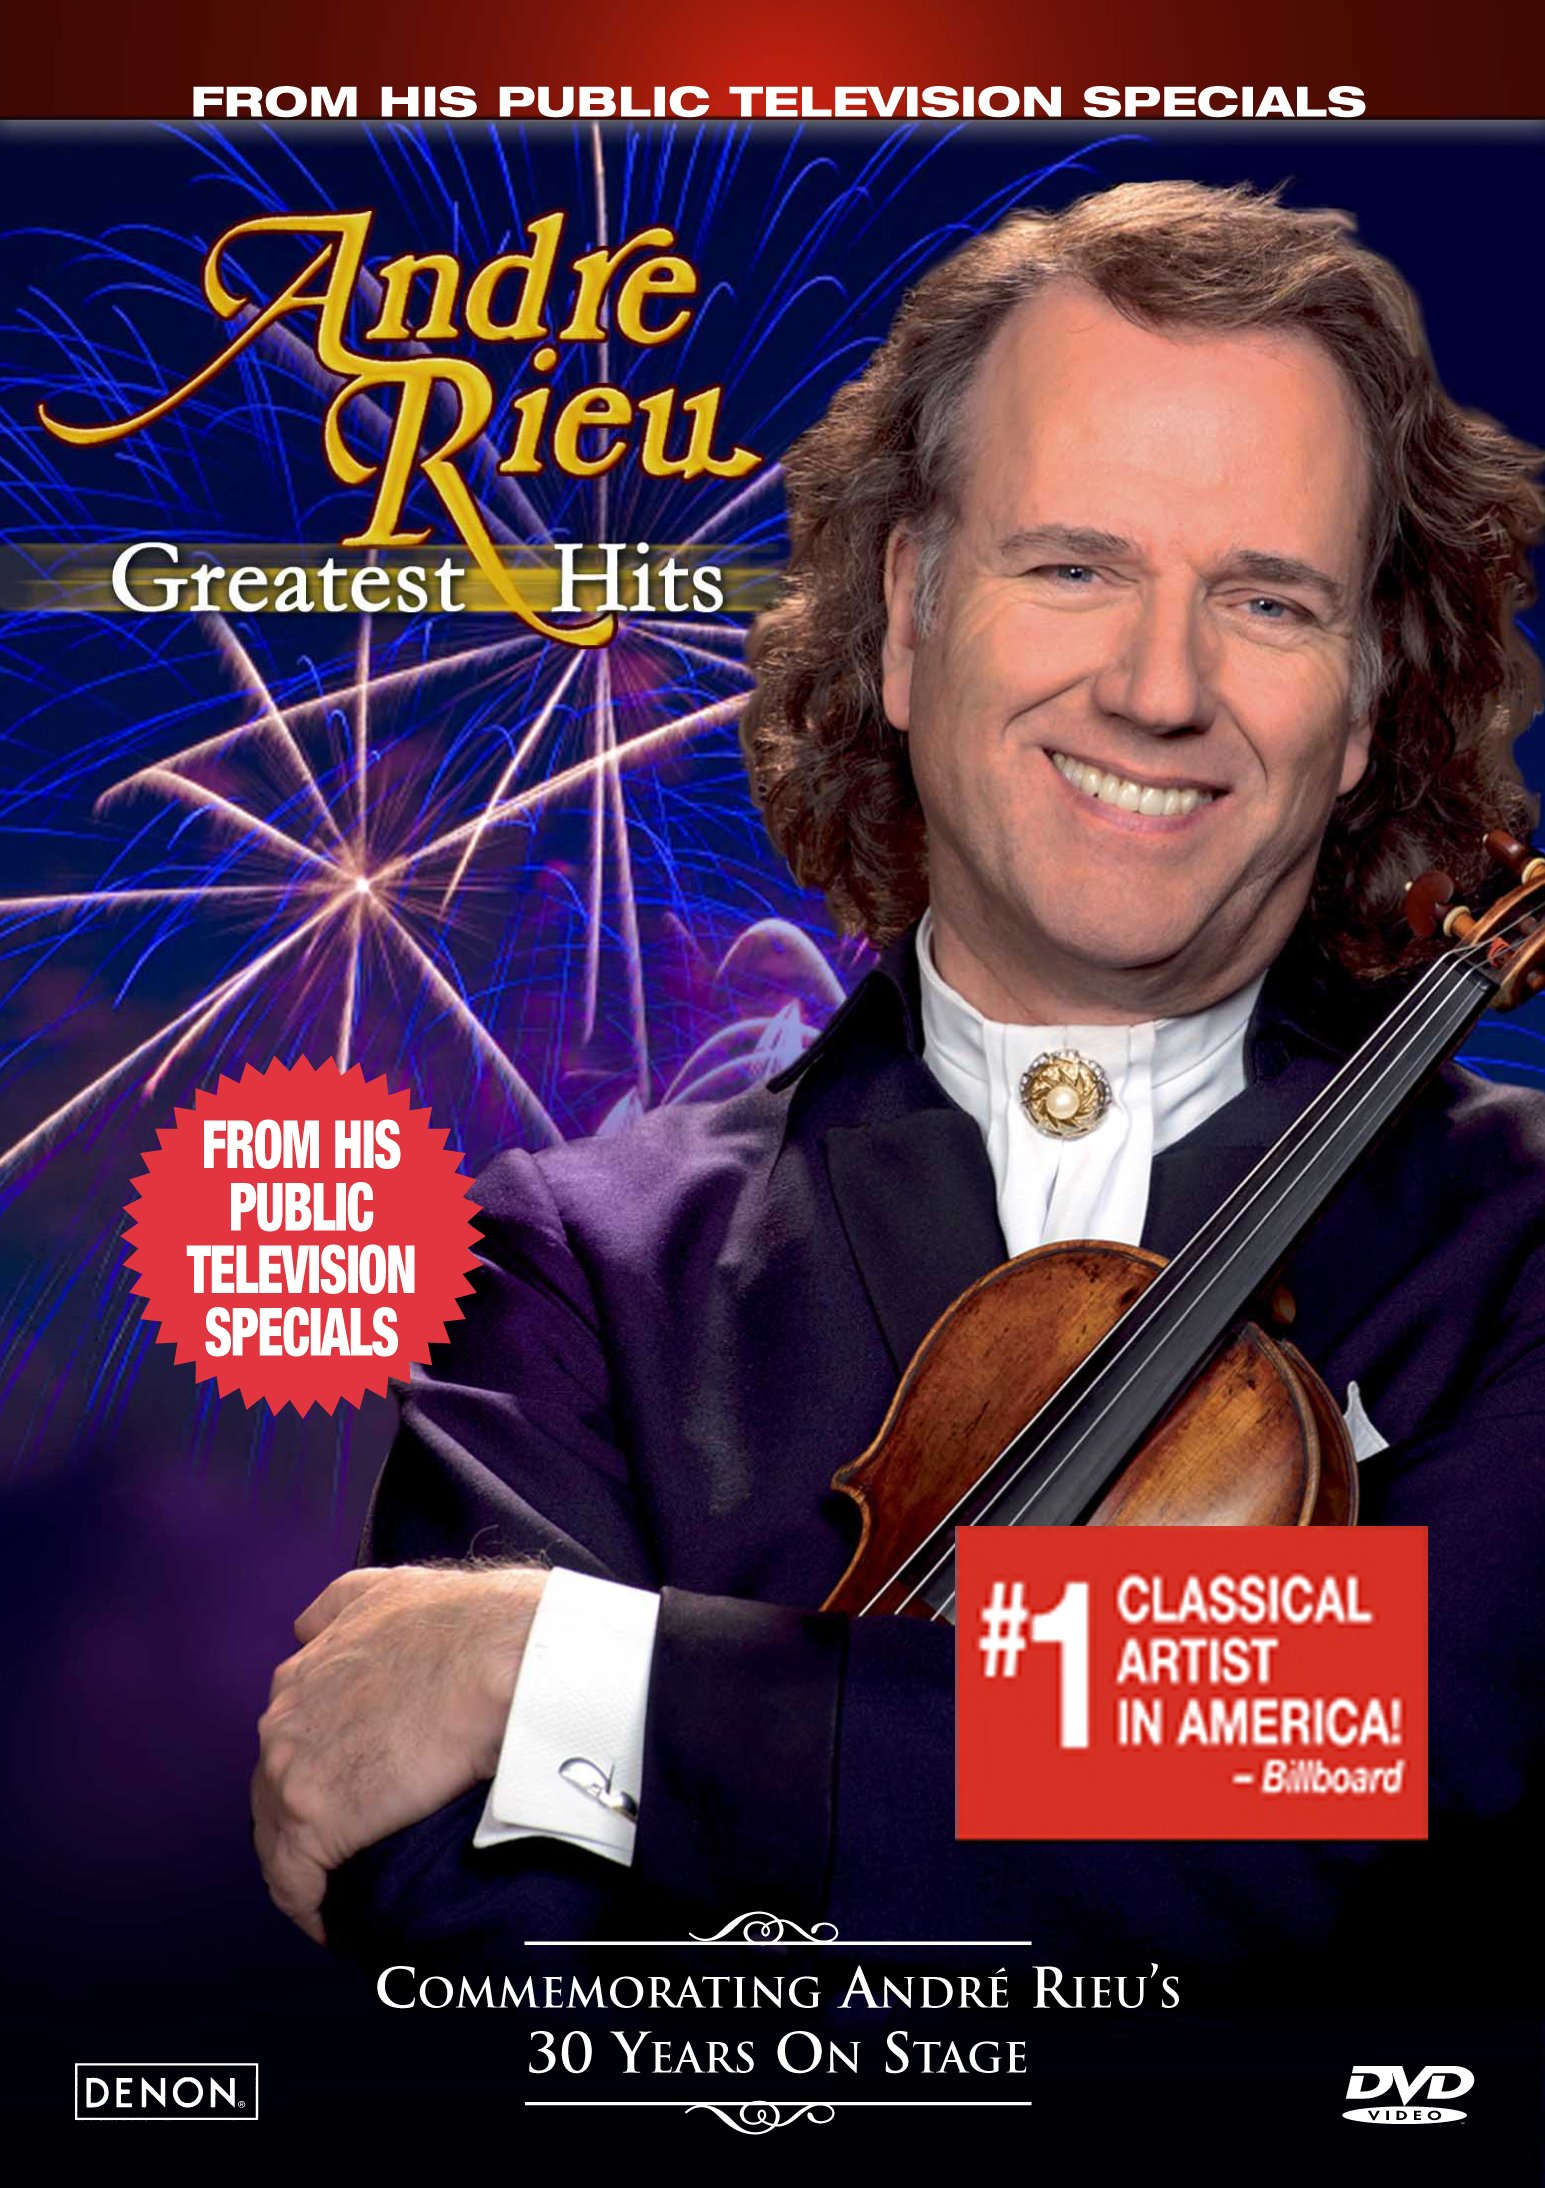 Andre Rieu - Greatest Hits (DVD)